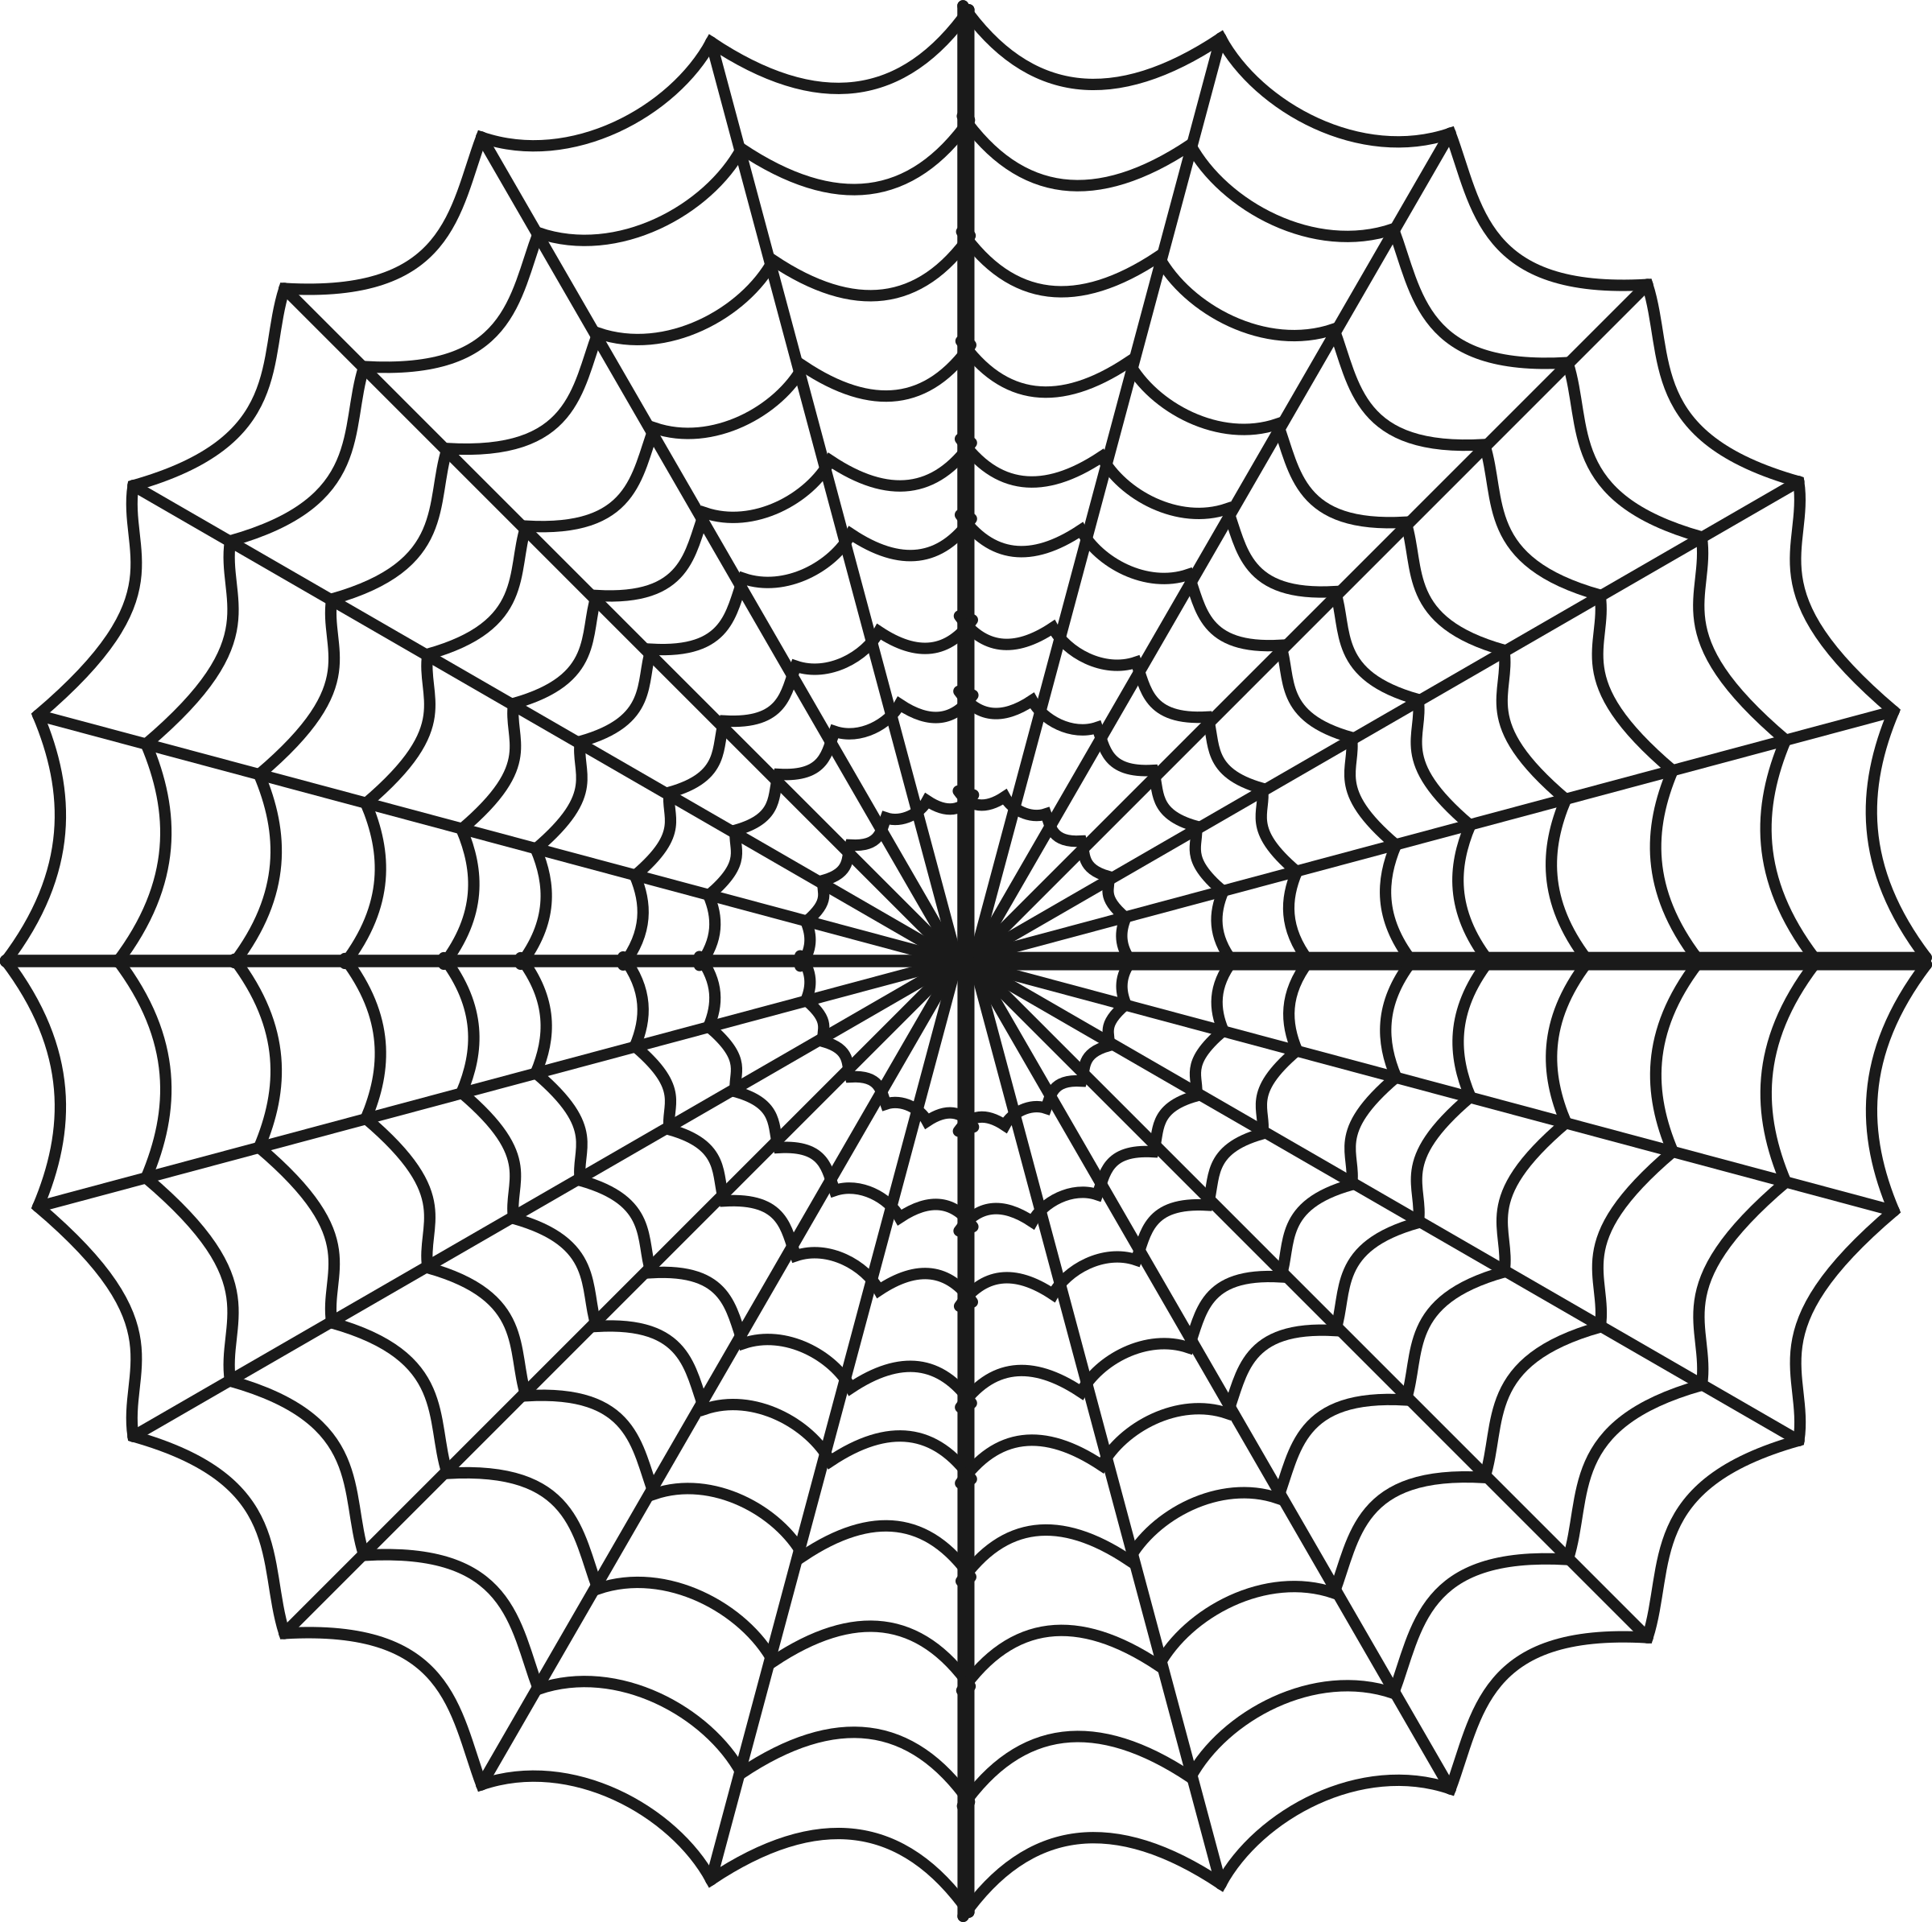 spiders web by tom